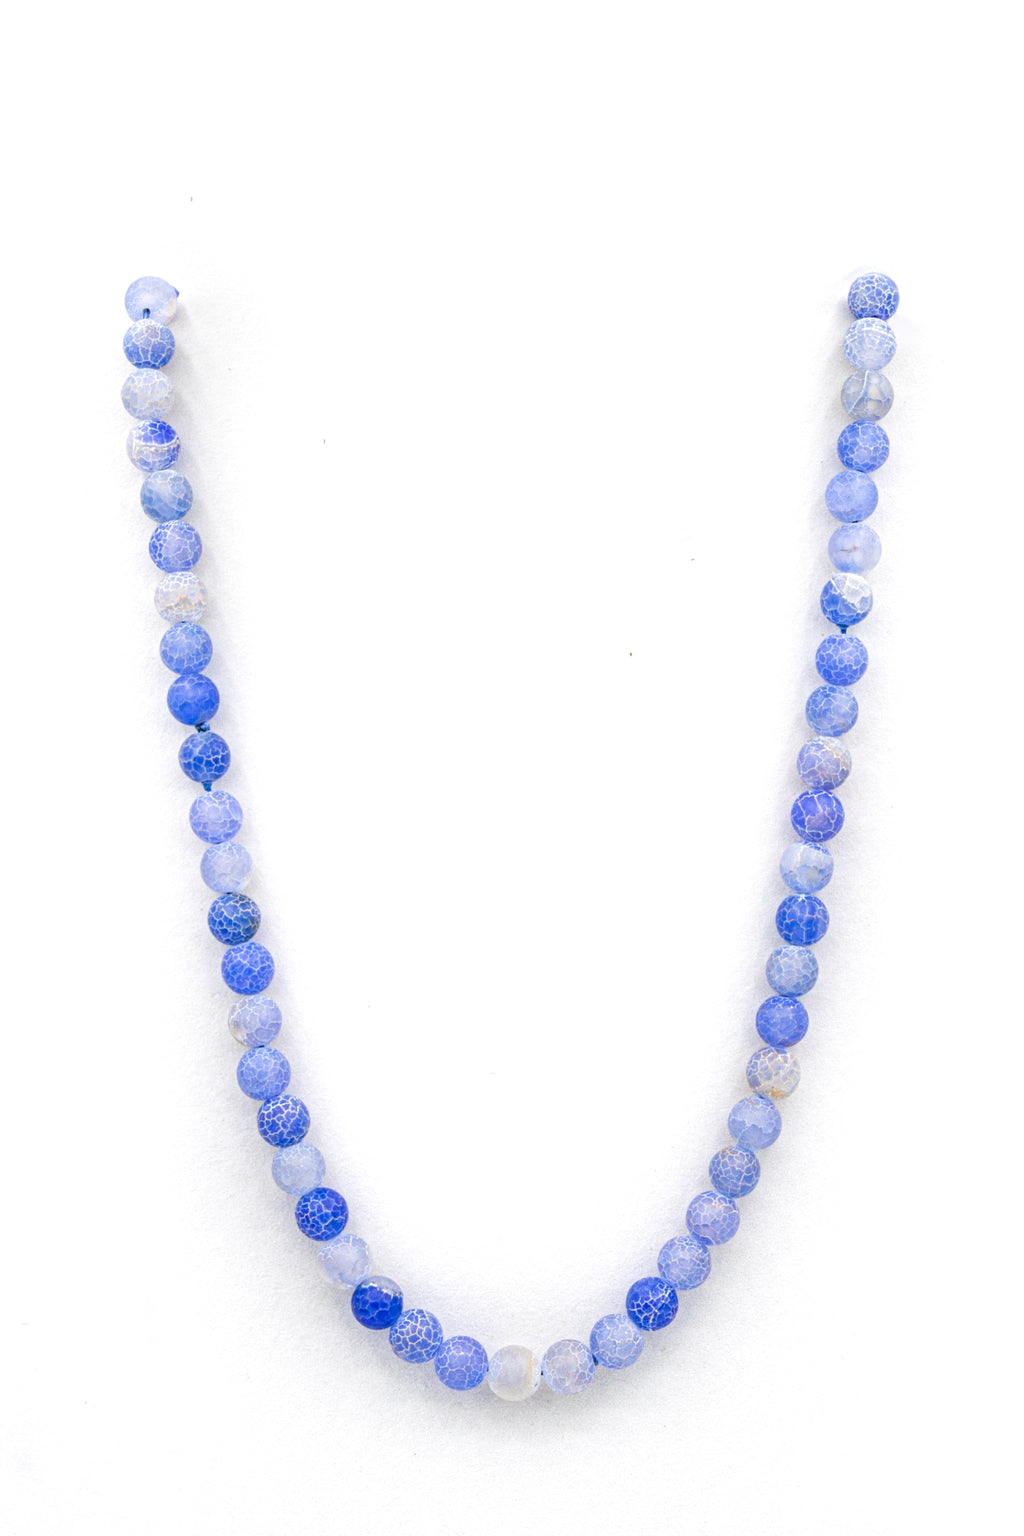 "</img src=""IMG_0108.JPG"" alt=""Blue-dragon-vein-10mm-30''-natural-stone-necklace""/>"